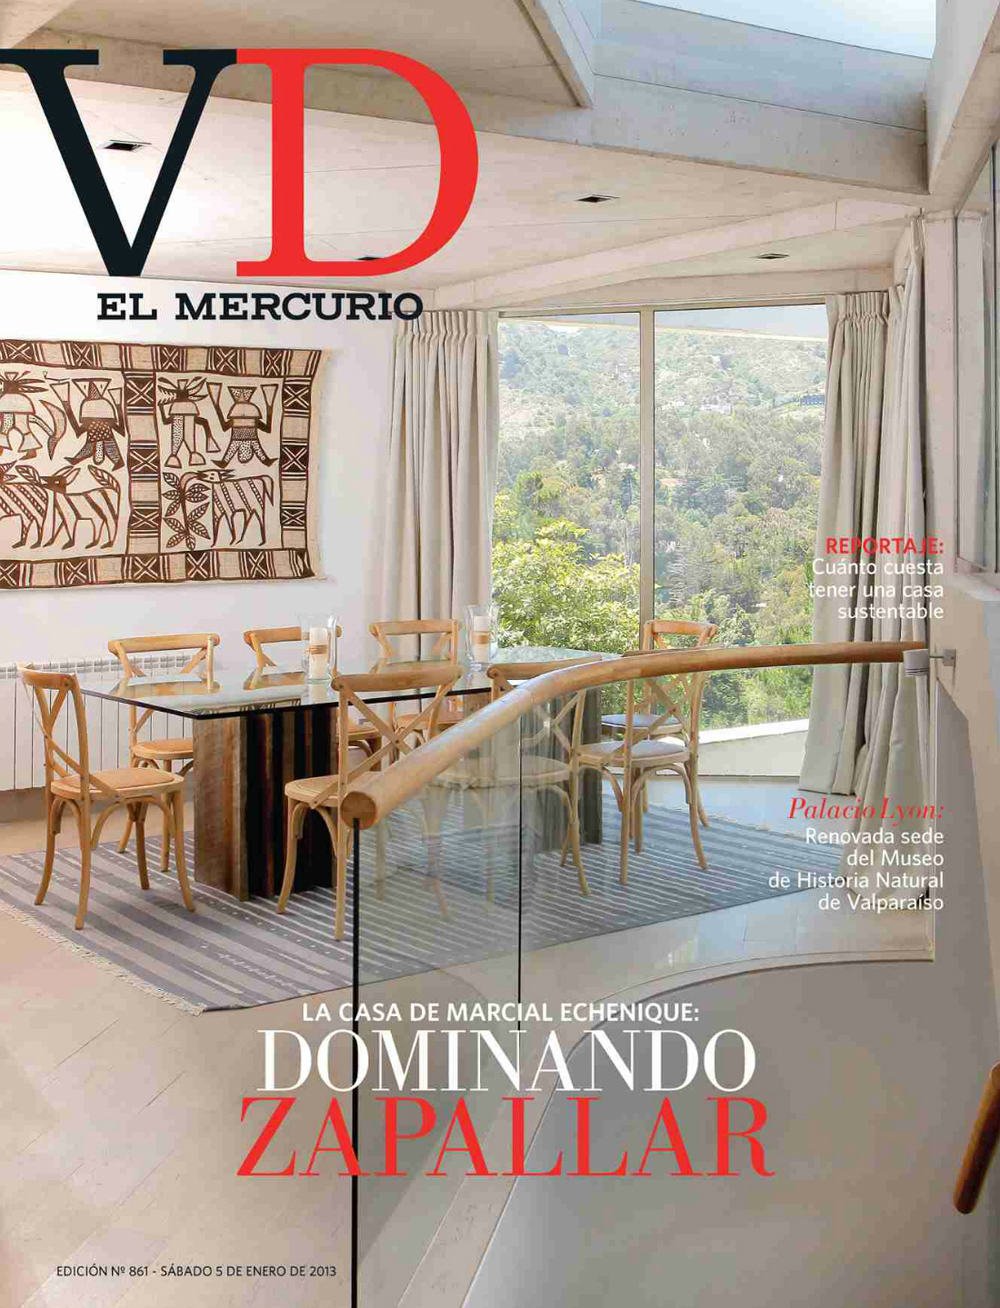 Publicaci n revista vivienda y decoraci n n 861 for Vivienda y decoracion online